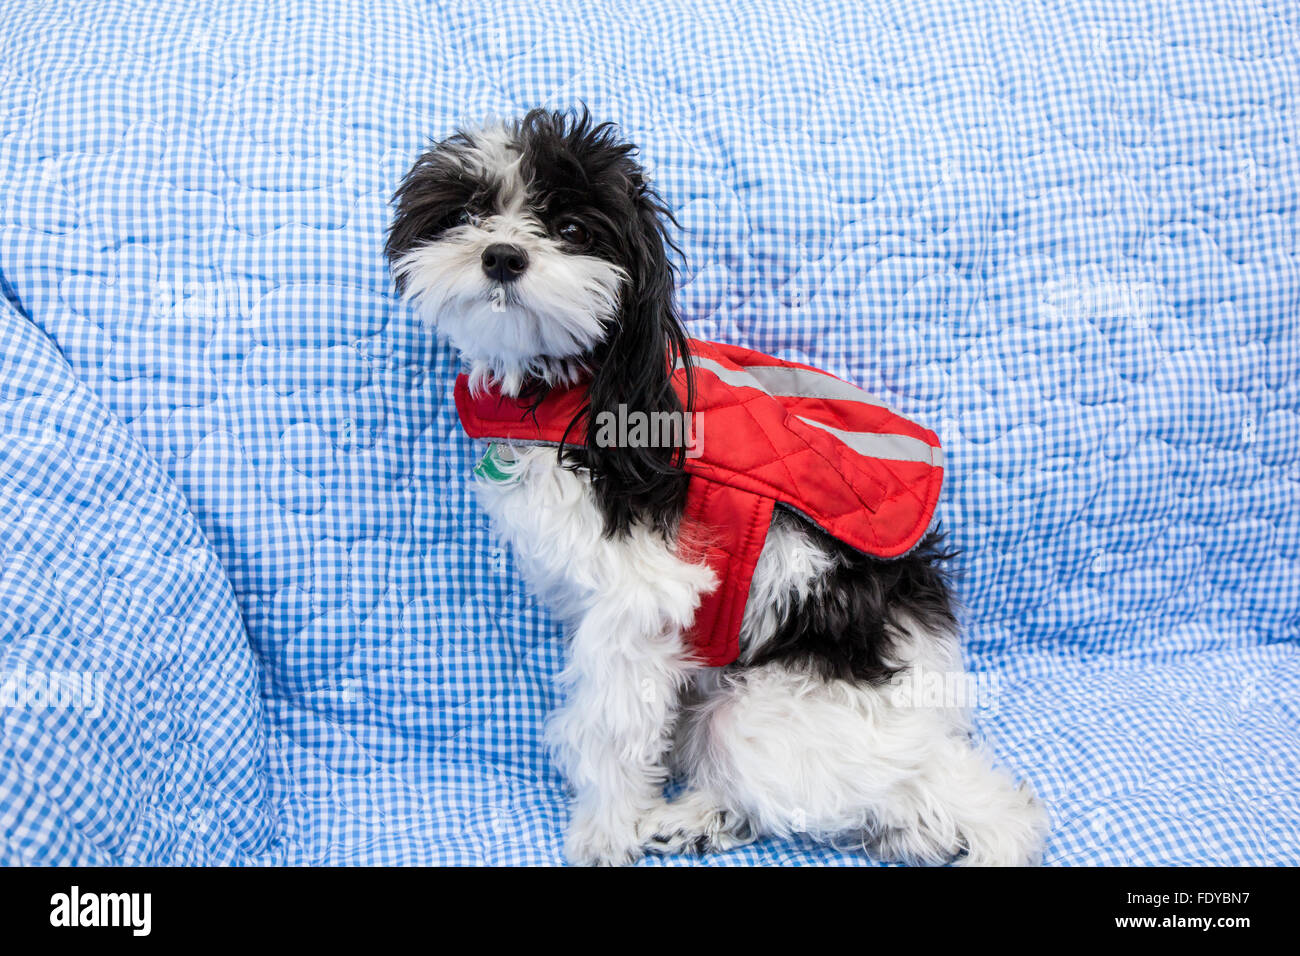 Maltipoo Puppy Amy Sitting On A Sofa Modeling Her Jacket In Stock